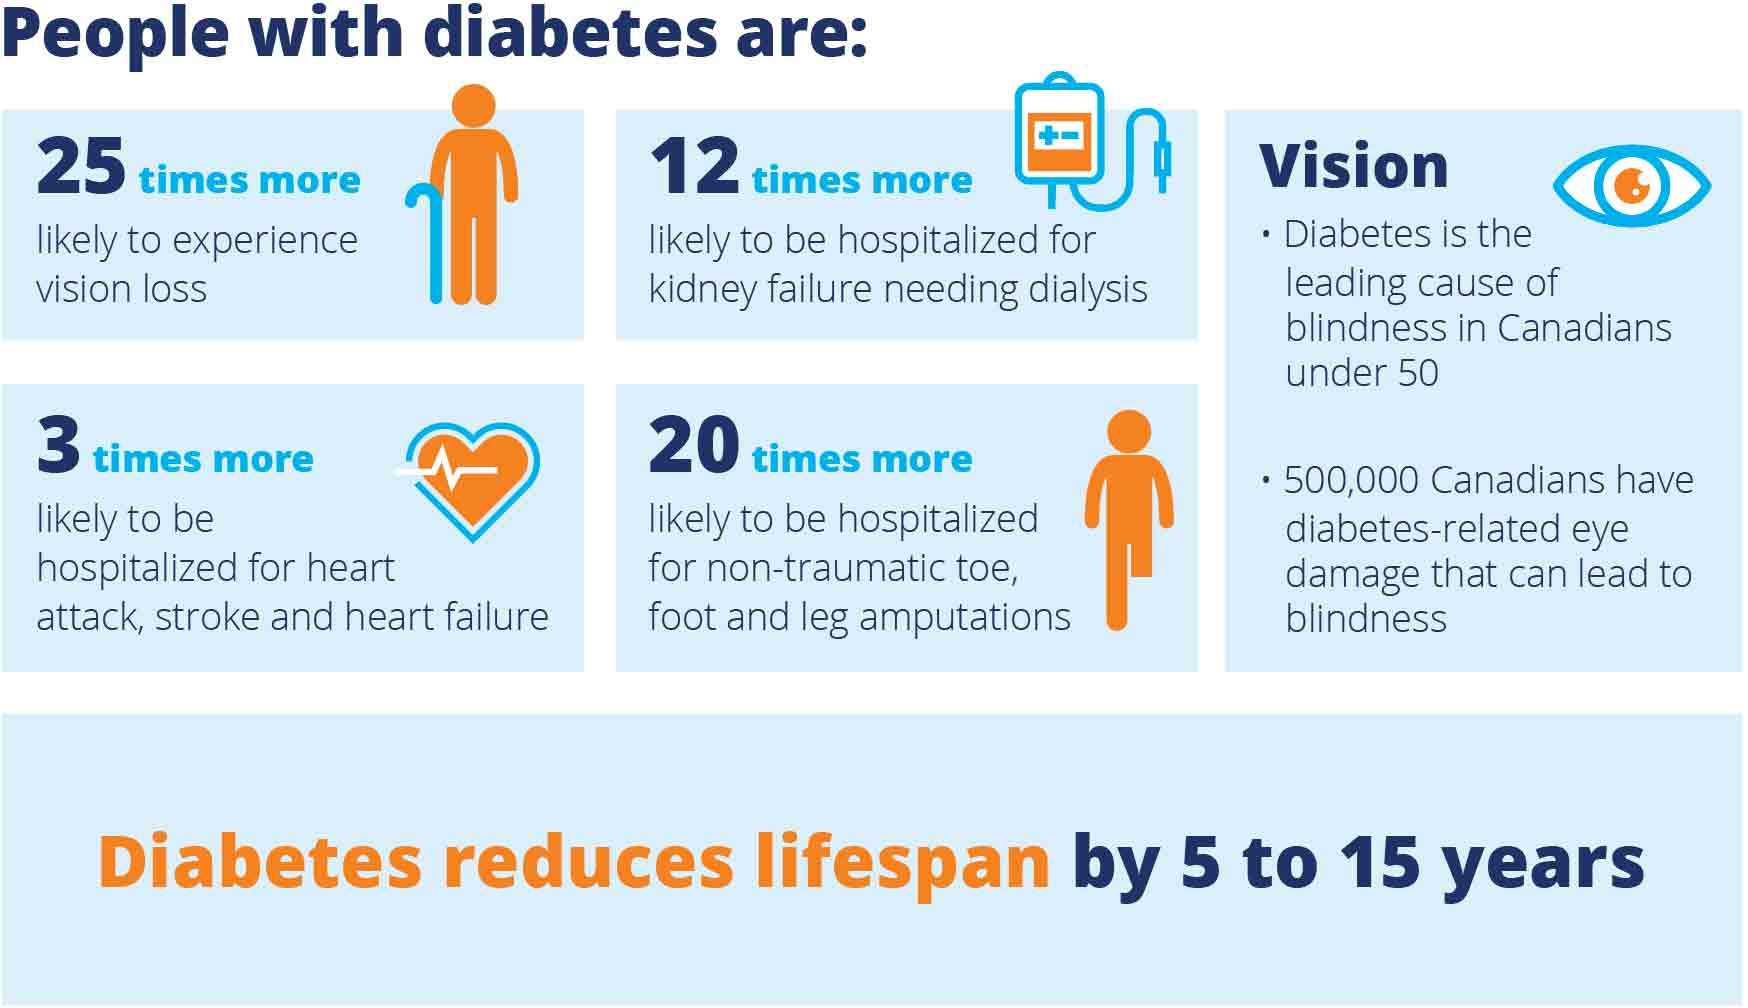 Source: The Diabetes health toll, June 2017